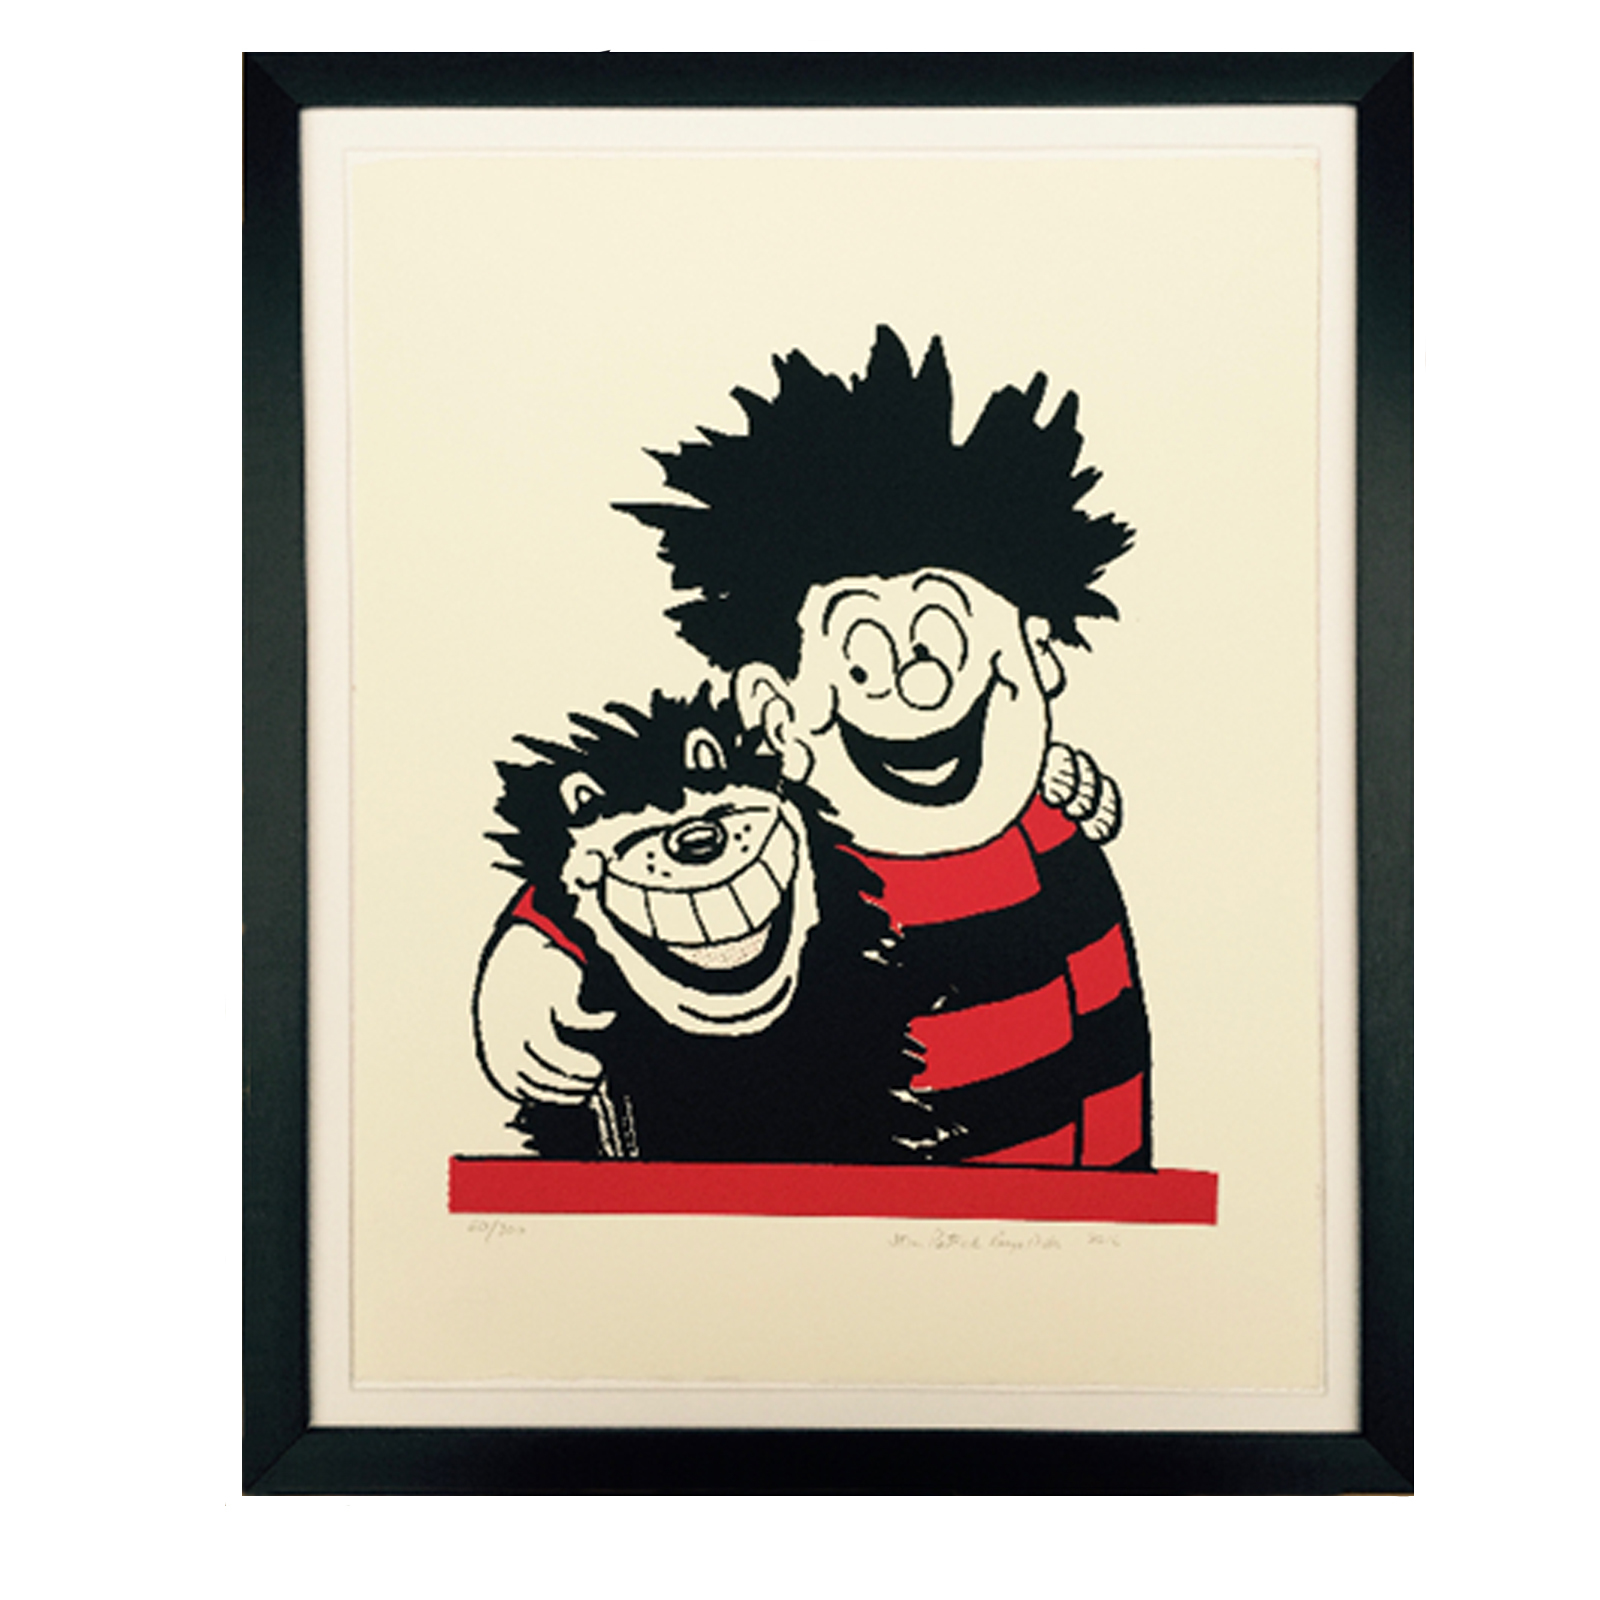 Dennis The Menace and Gnasher Hug - Limited Edition Screen Print